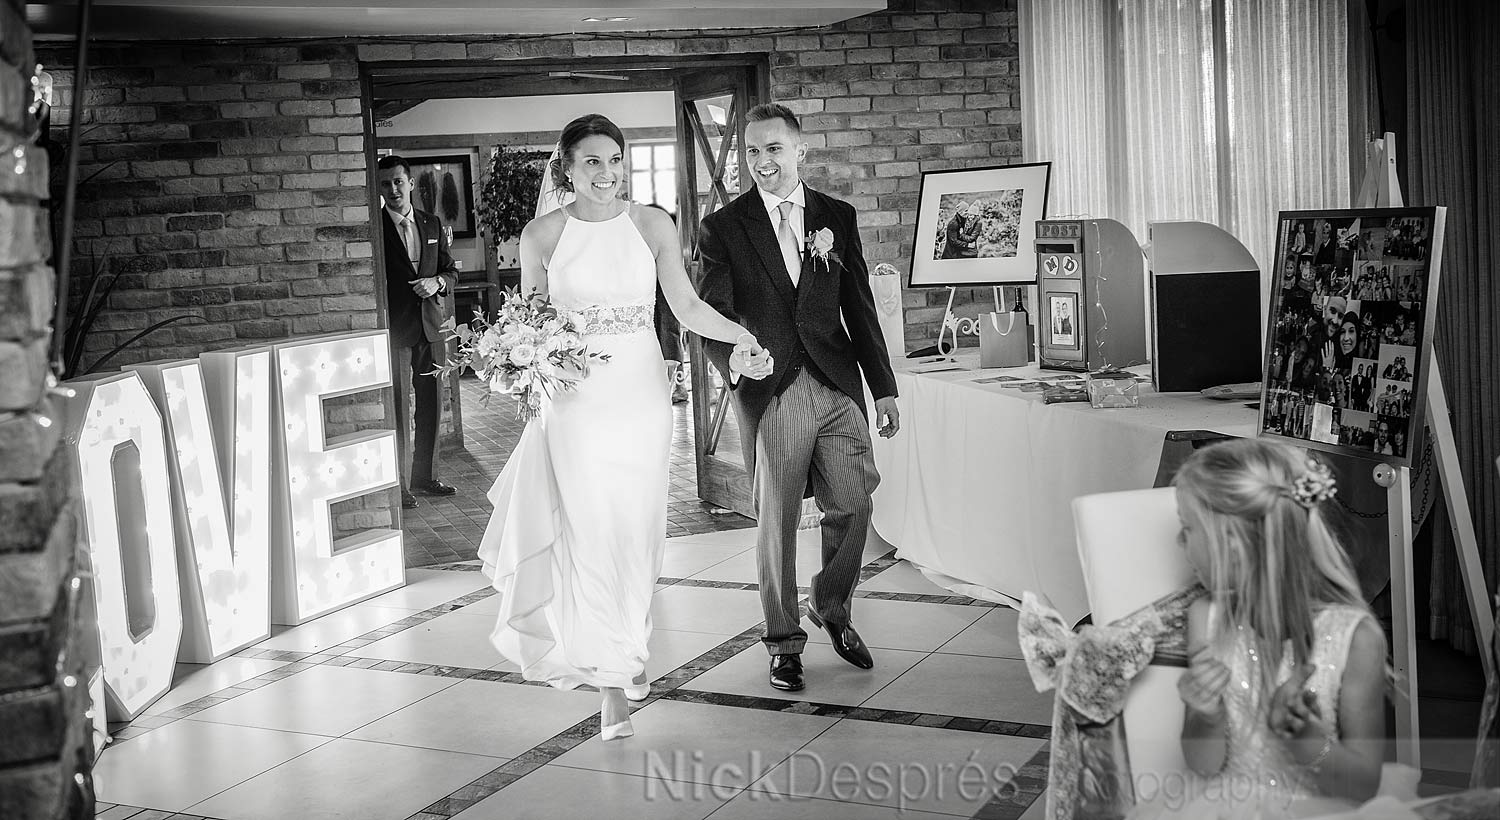 Danielle's dad was celebrating his birthday on his daughter's wedding day! He made a grand entrance himself after the couple.